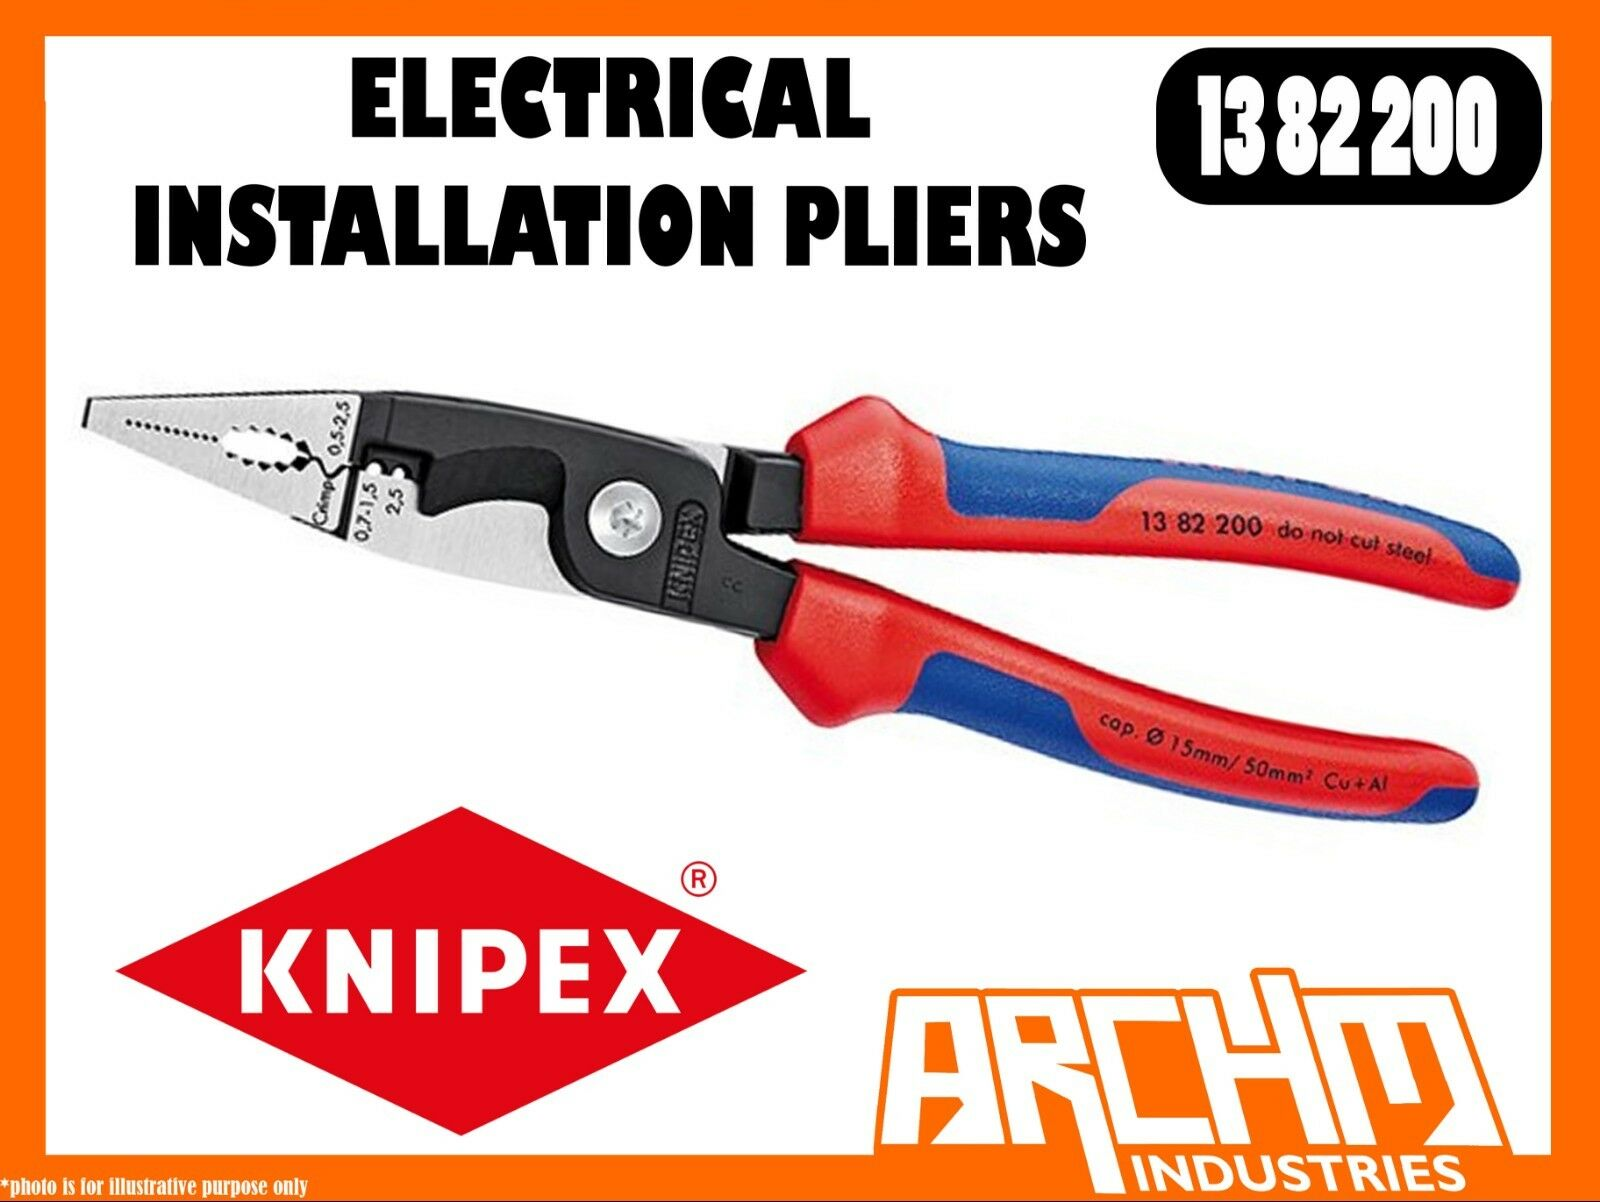 KNIPEX 1382200 - ELECTRICAL INSTALLATION PLIERS - 200MM CUTTING EDGES STEEL GRIP